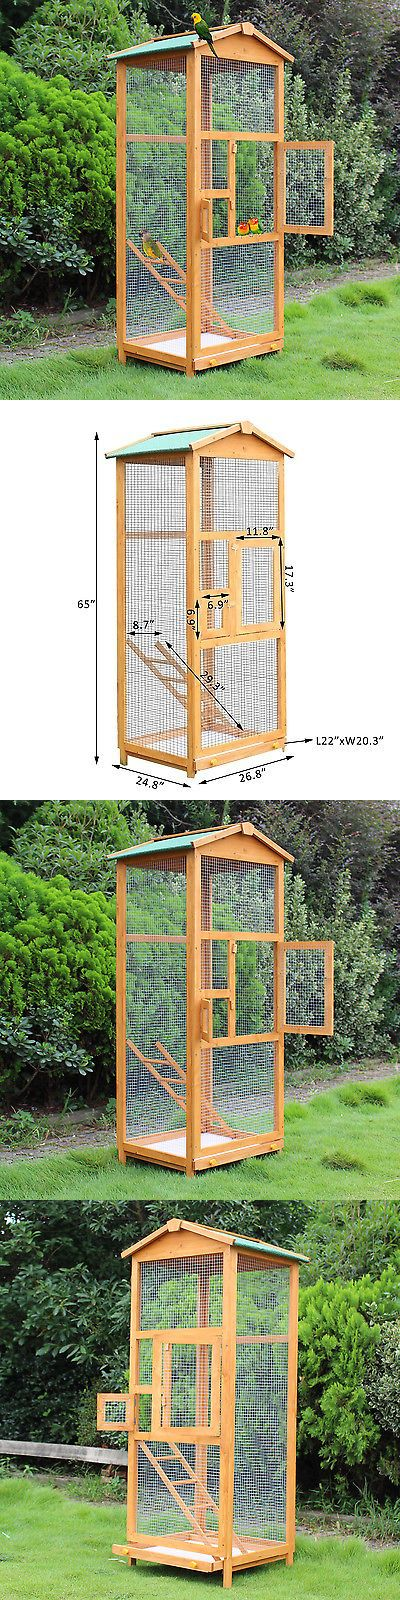 Cages 46289: Wooden Large Bird Cage 65? Pet Play Covered House Ladder Feeder Stand Outdoor -> BUY IT NOW ONLY: $109.99 on eBay!